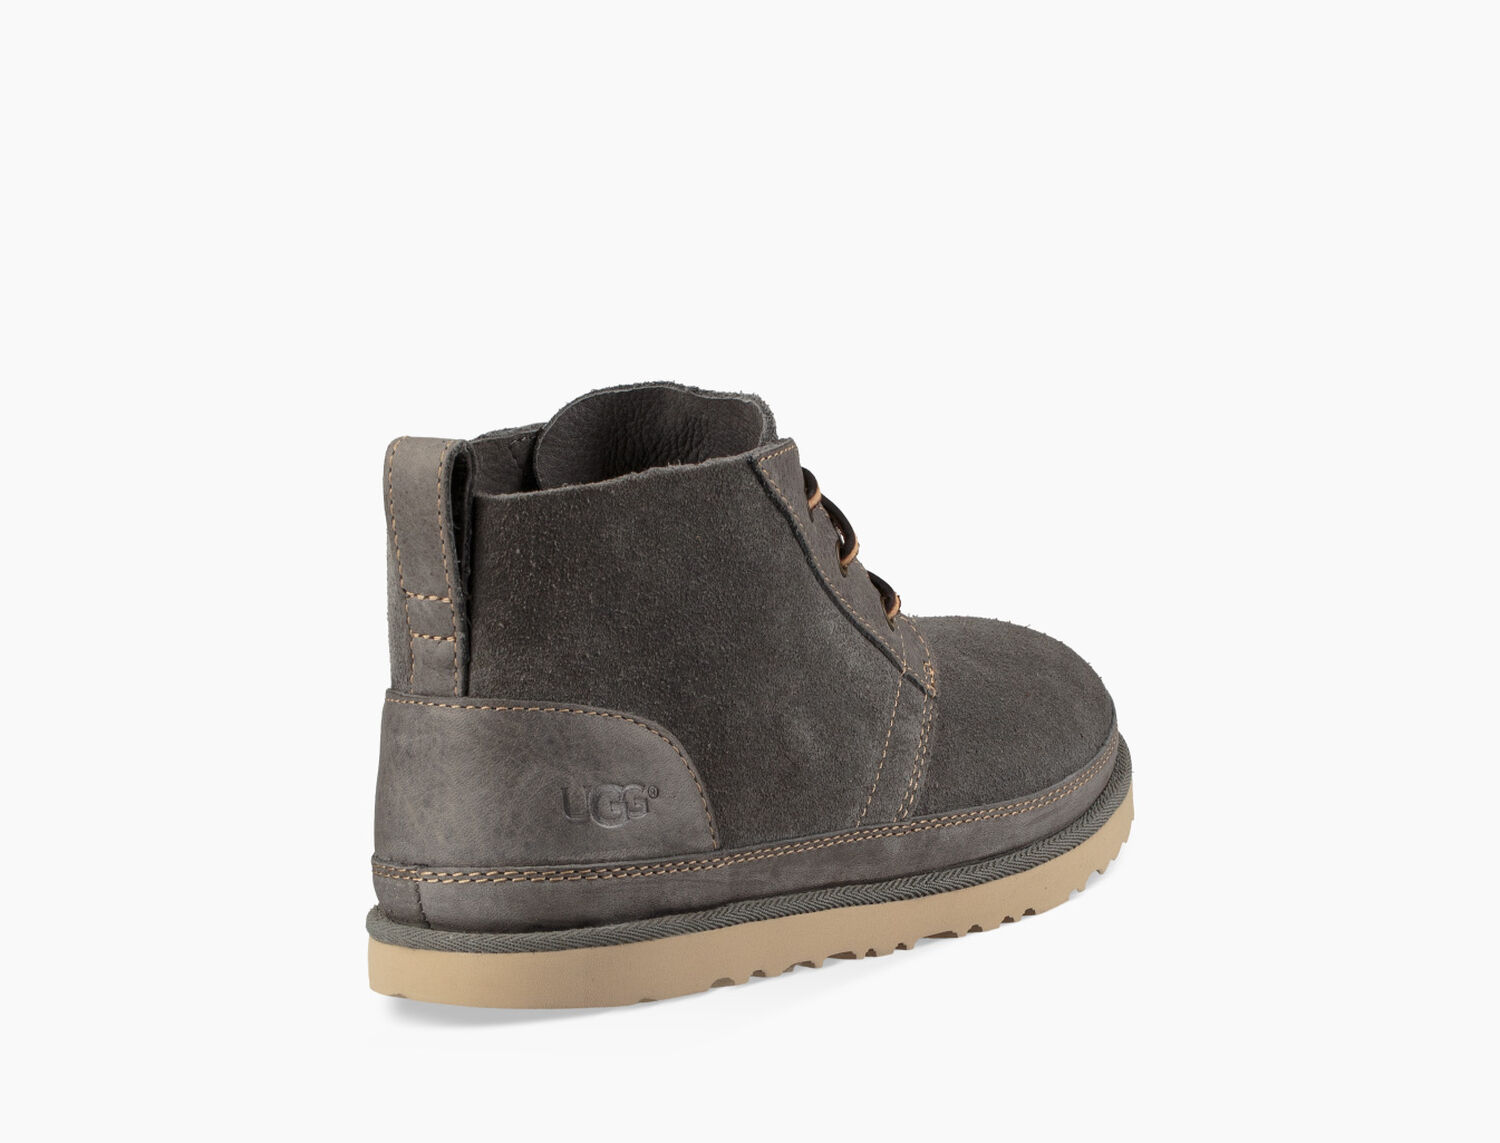 0e76e515355 Men's Share this product Neumel Unlined Leather Boot